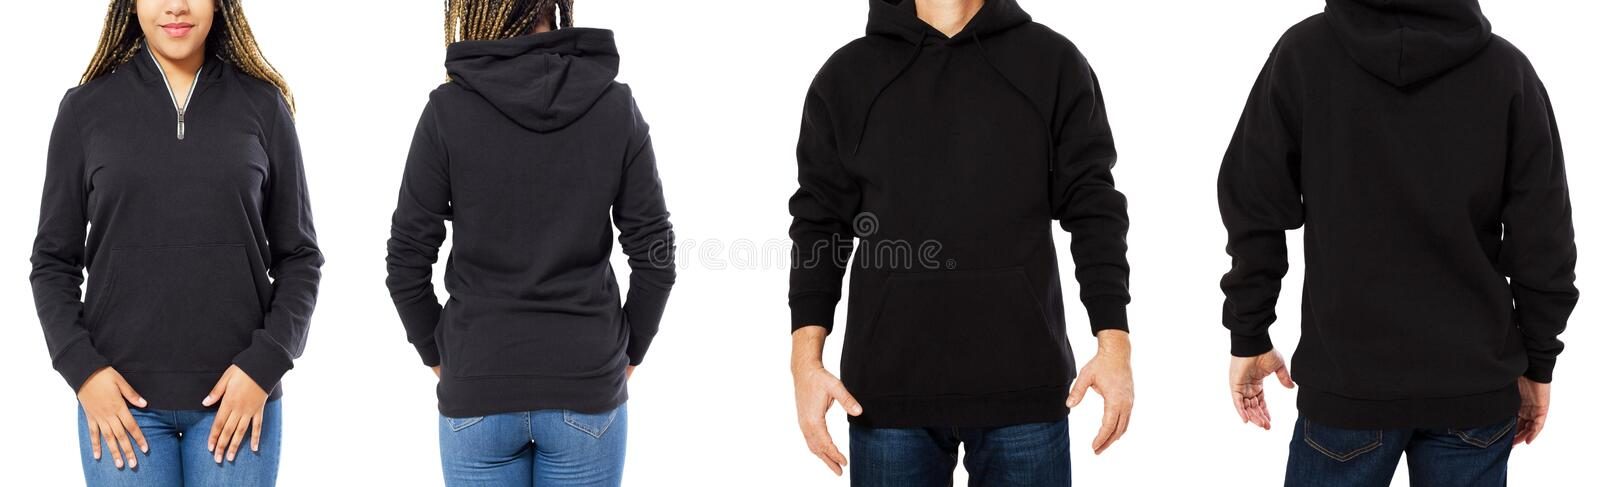 Front back and rear black sweatshirt view. Beautiful black female and male body in template clothes for print and copy space royalty free stock image